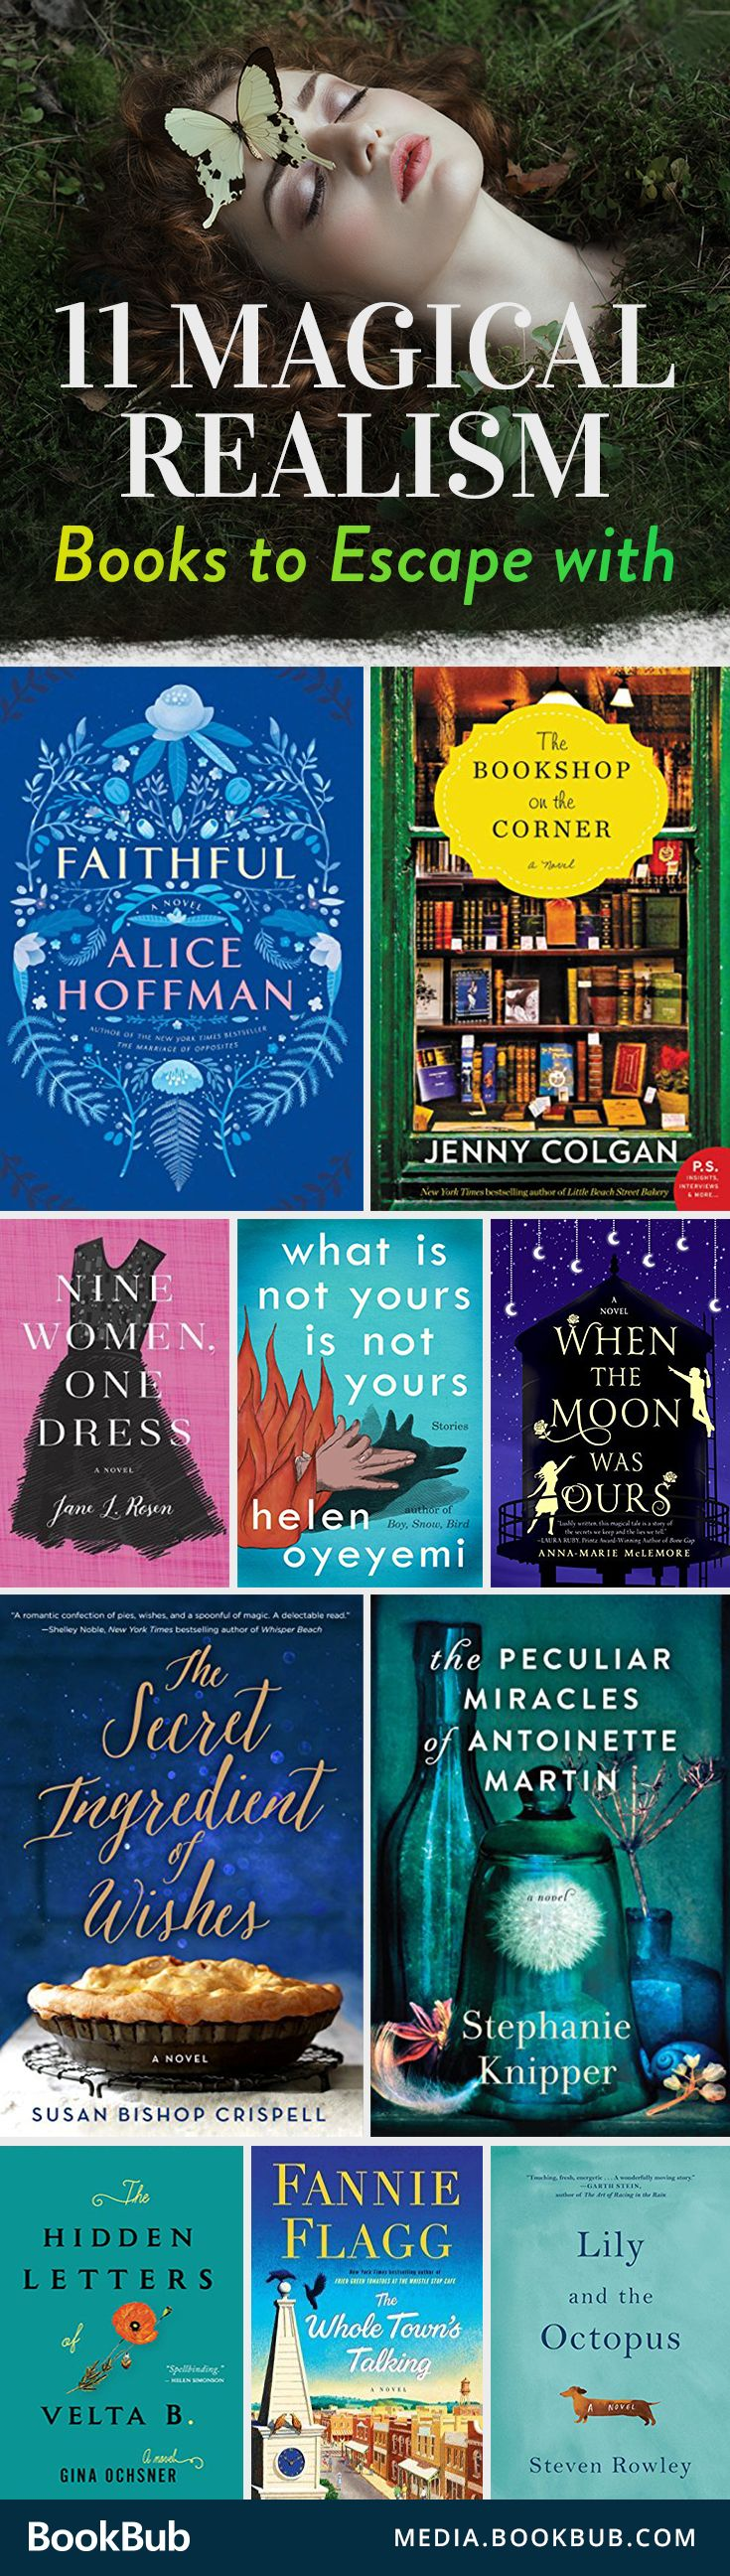 These books are worth reading when you need an escape.